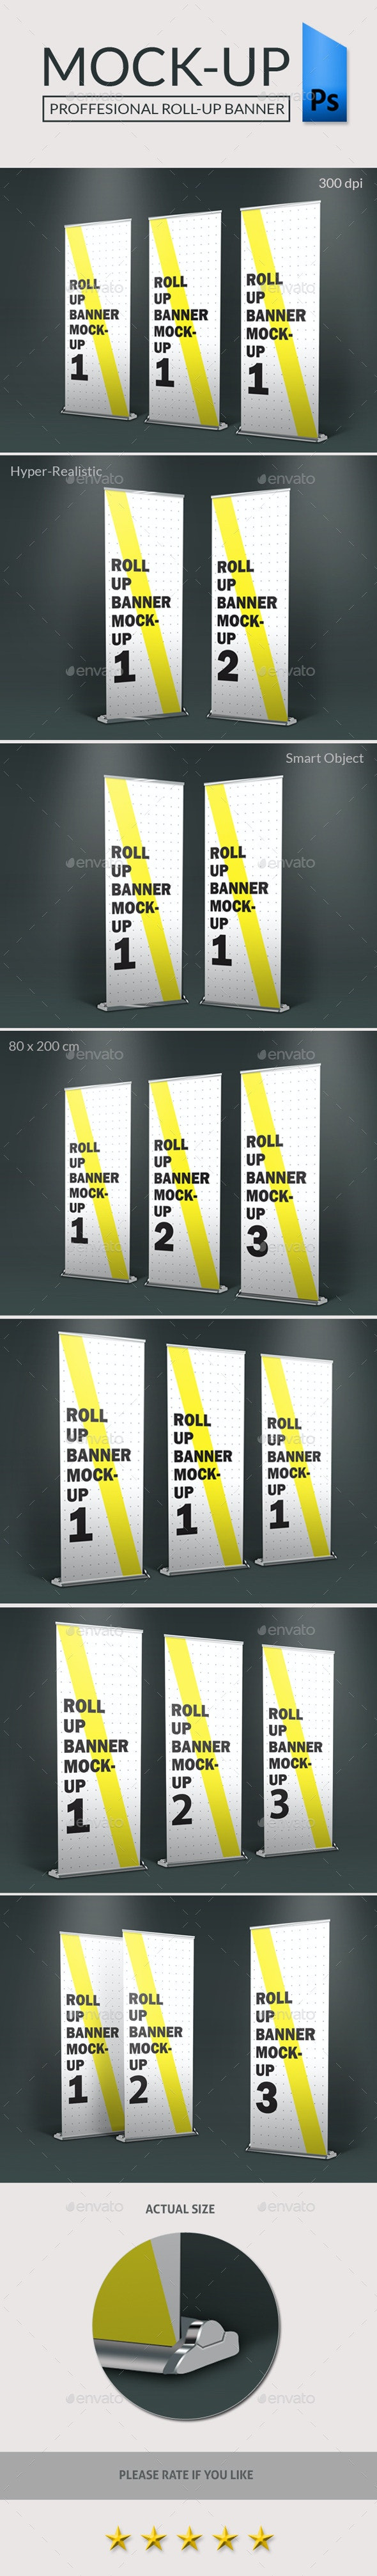 Roll-Up Standing Banner Photorealistic-Mockup - Signage Print